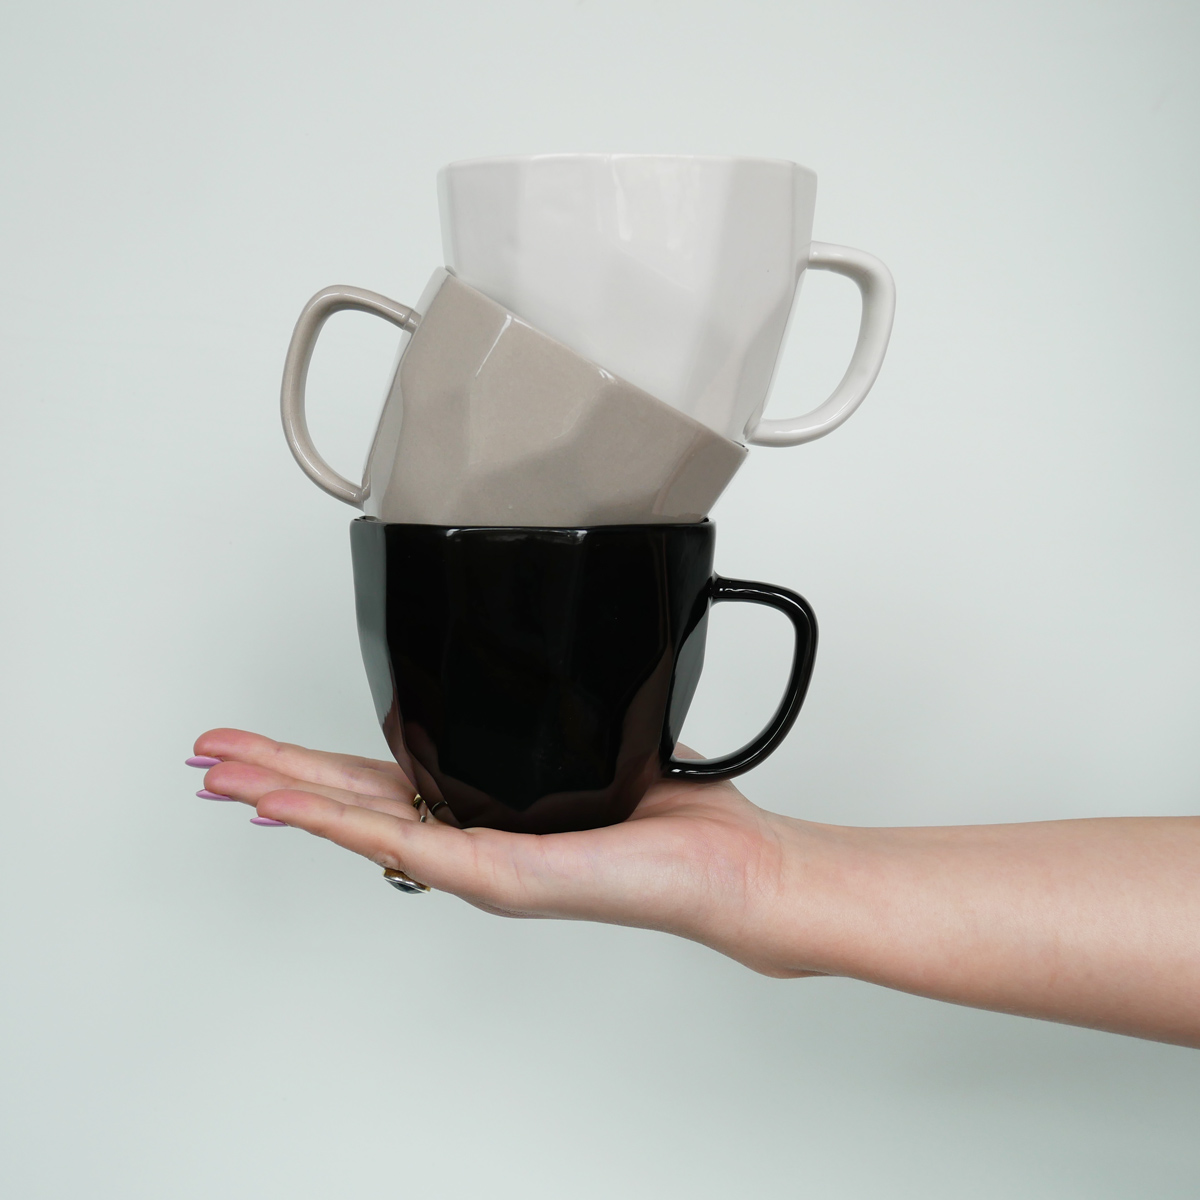 liv-interior-geometric-mug-hand-held-stack-black-on-grey-on-white